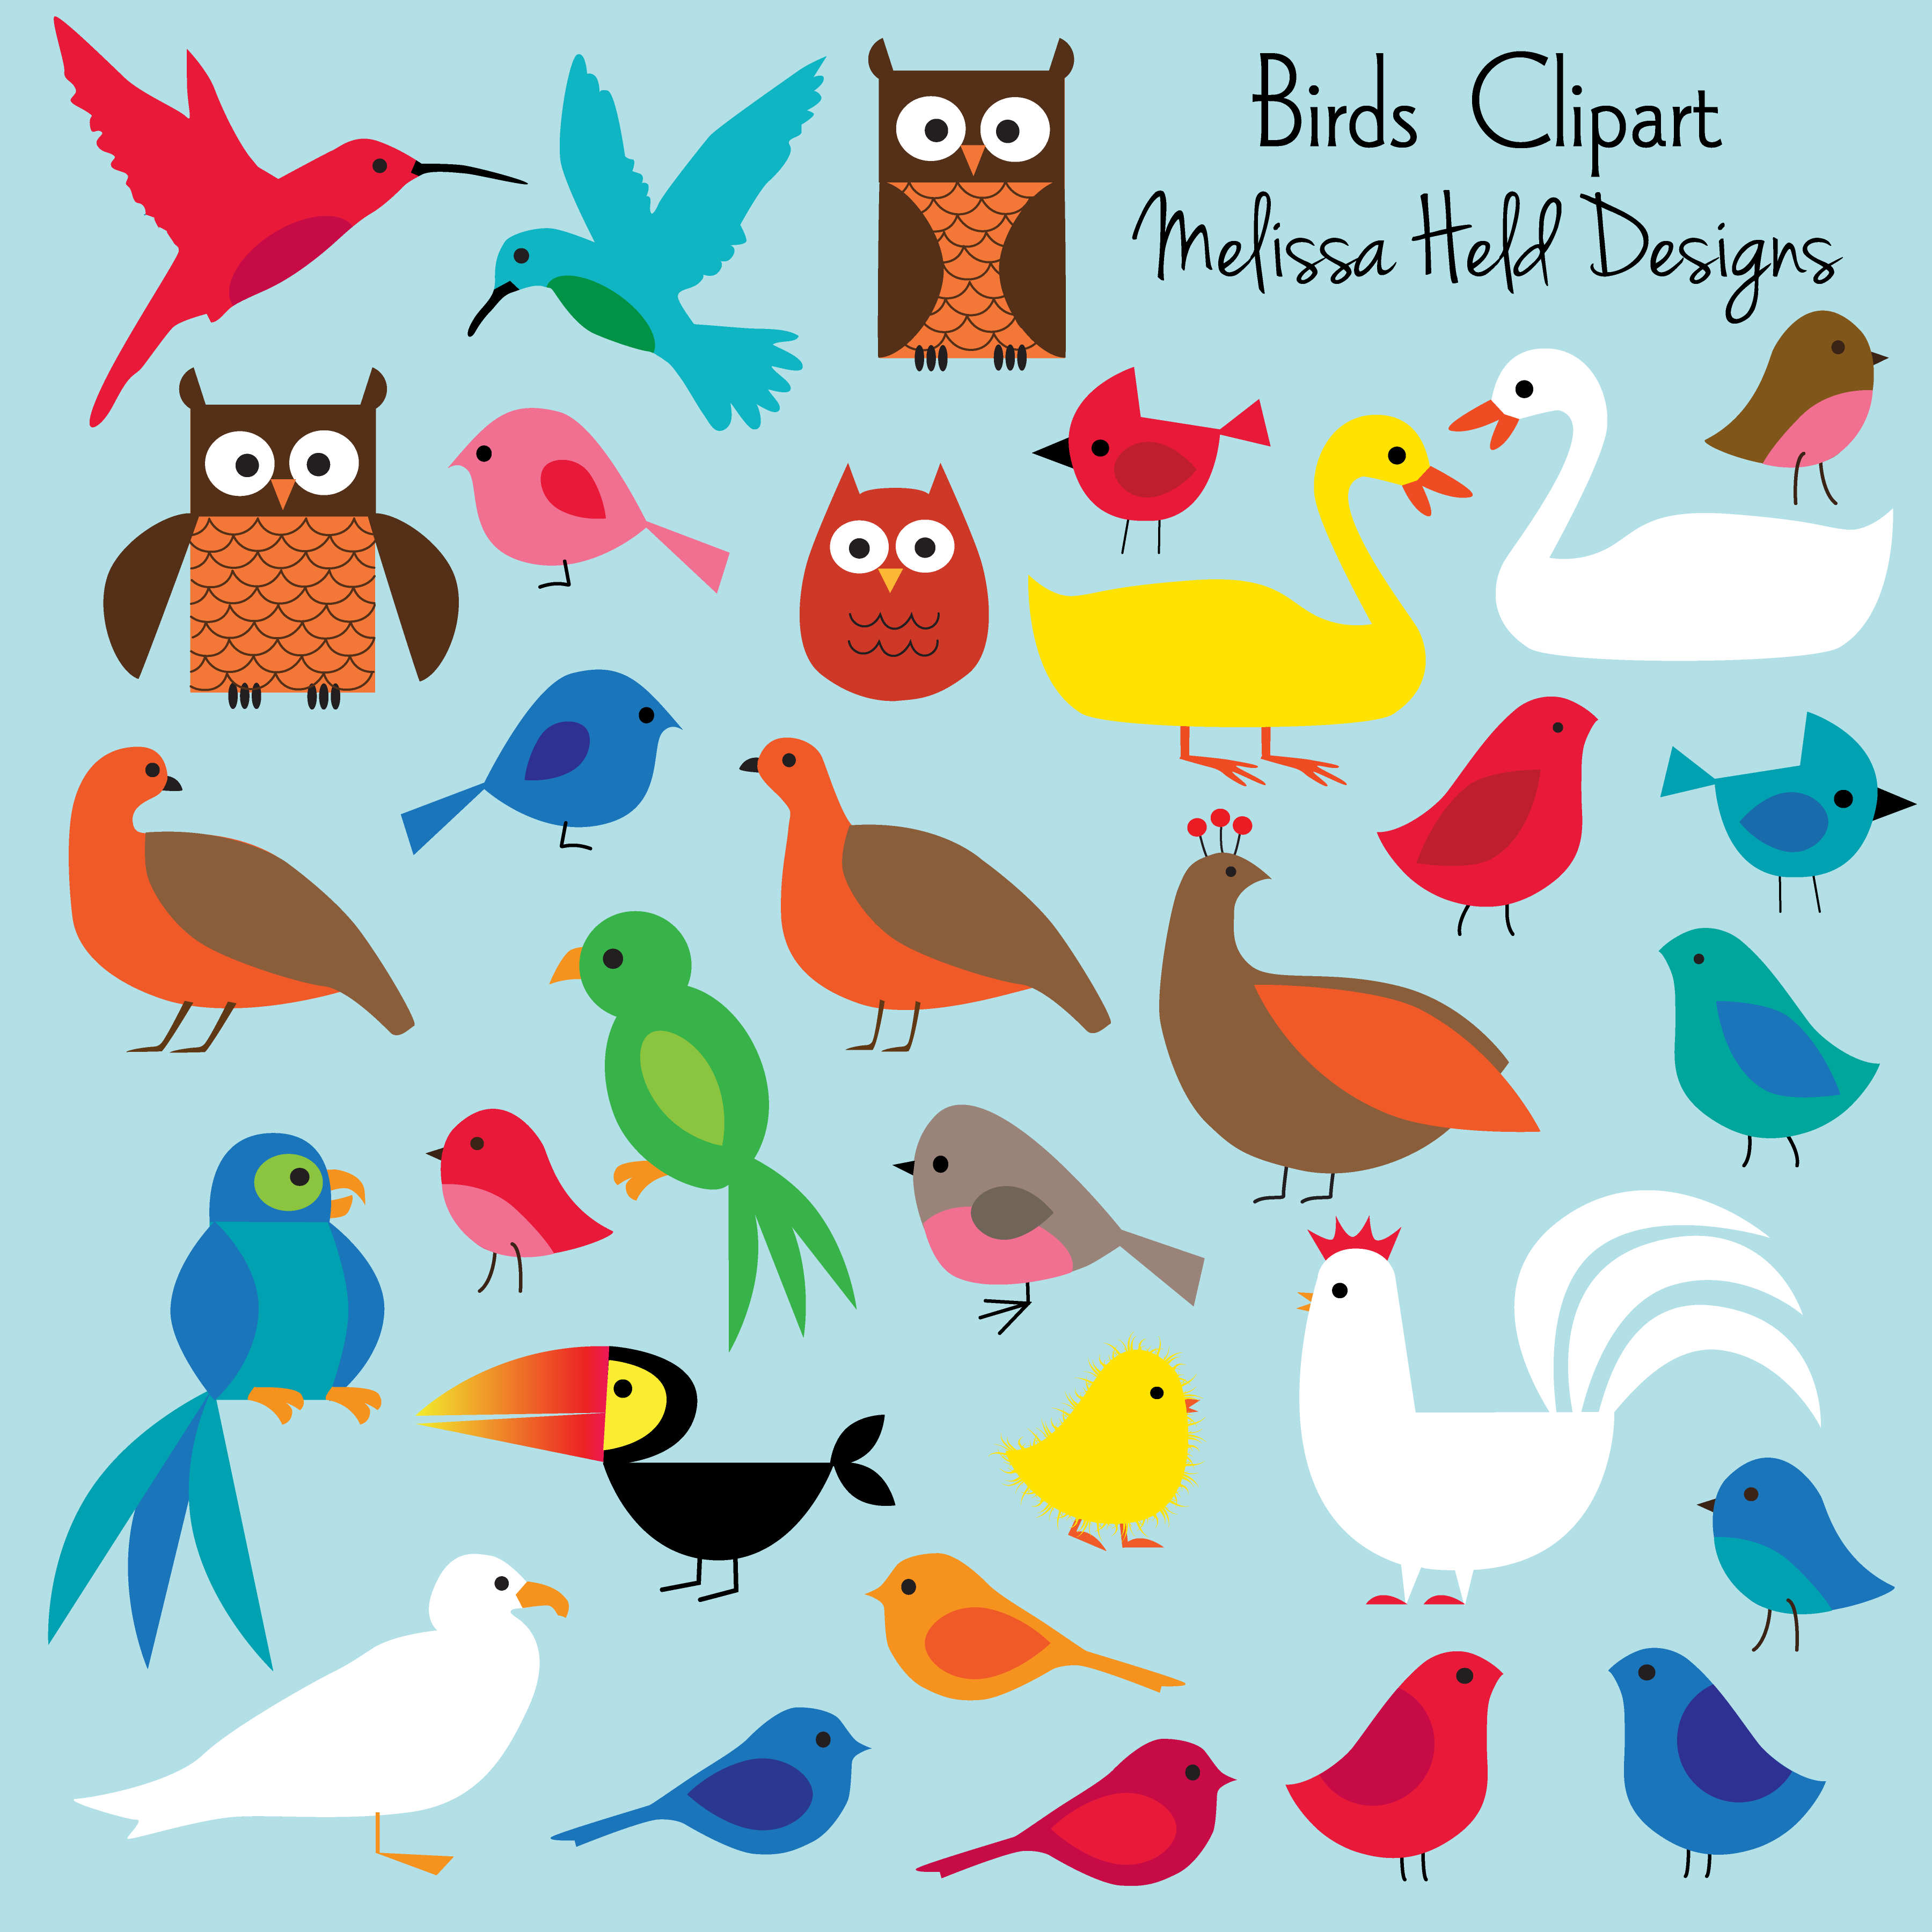 Birds clipart. Hens bird and